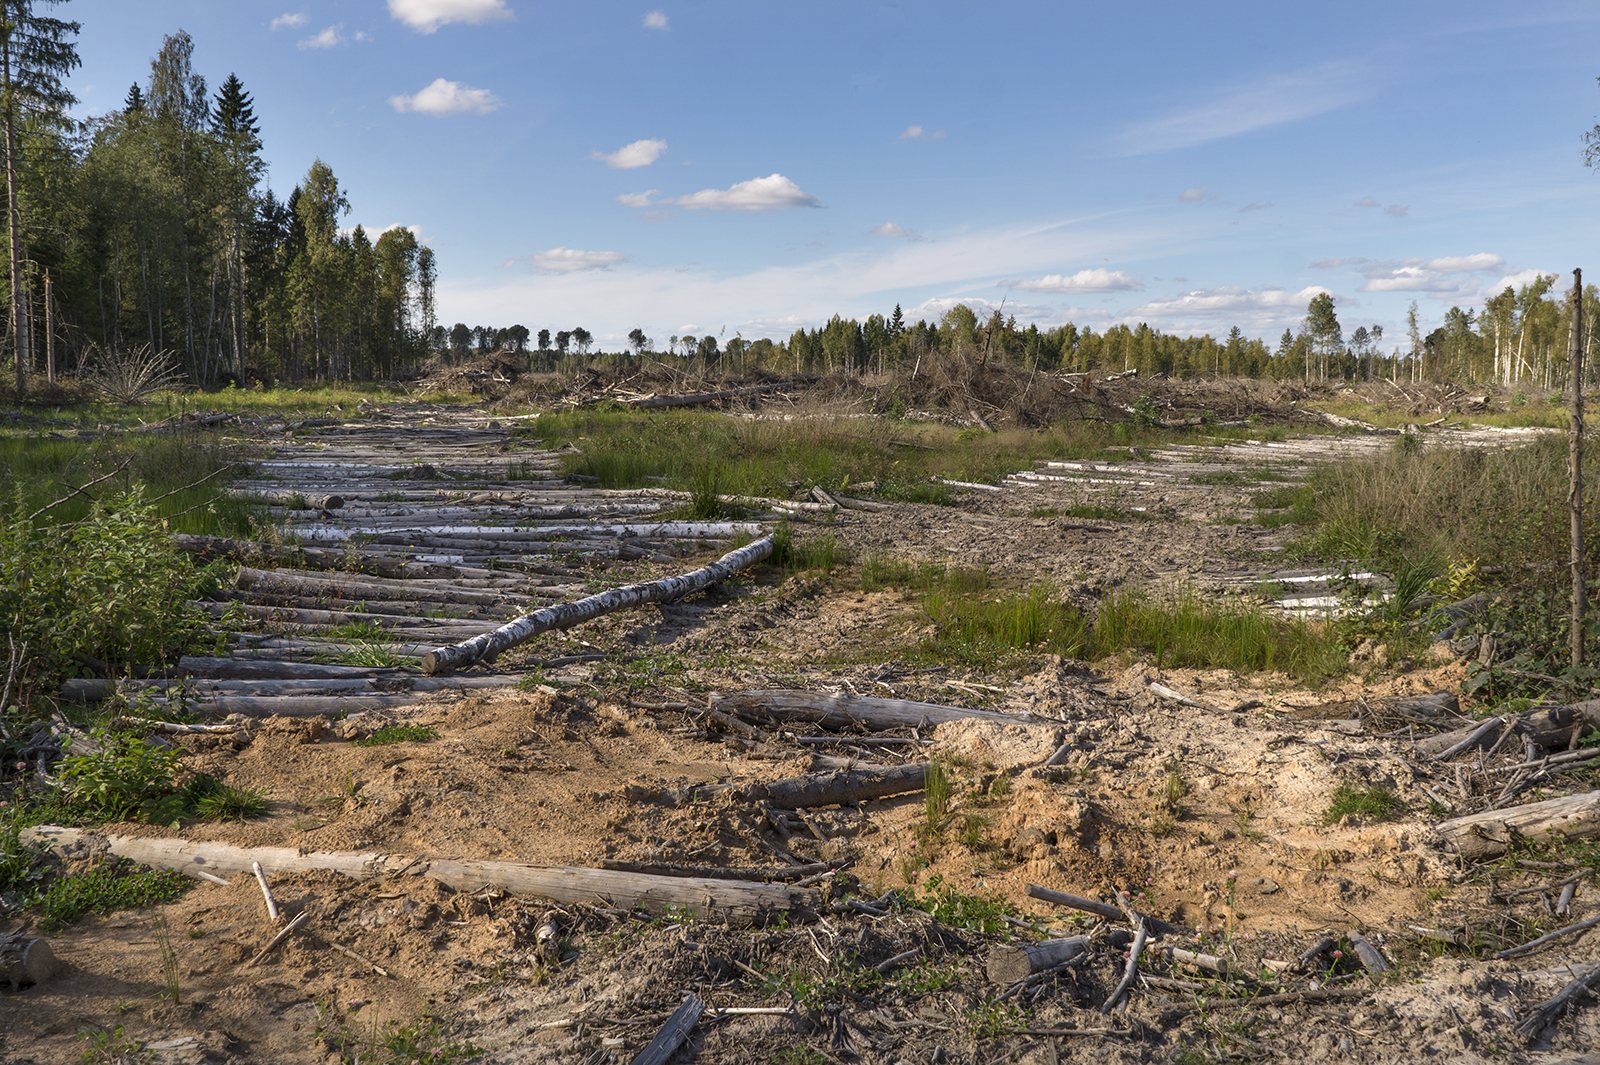 Logging from the ground in Russia © Vilen Lupachik/Greenpeace